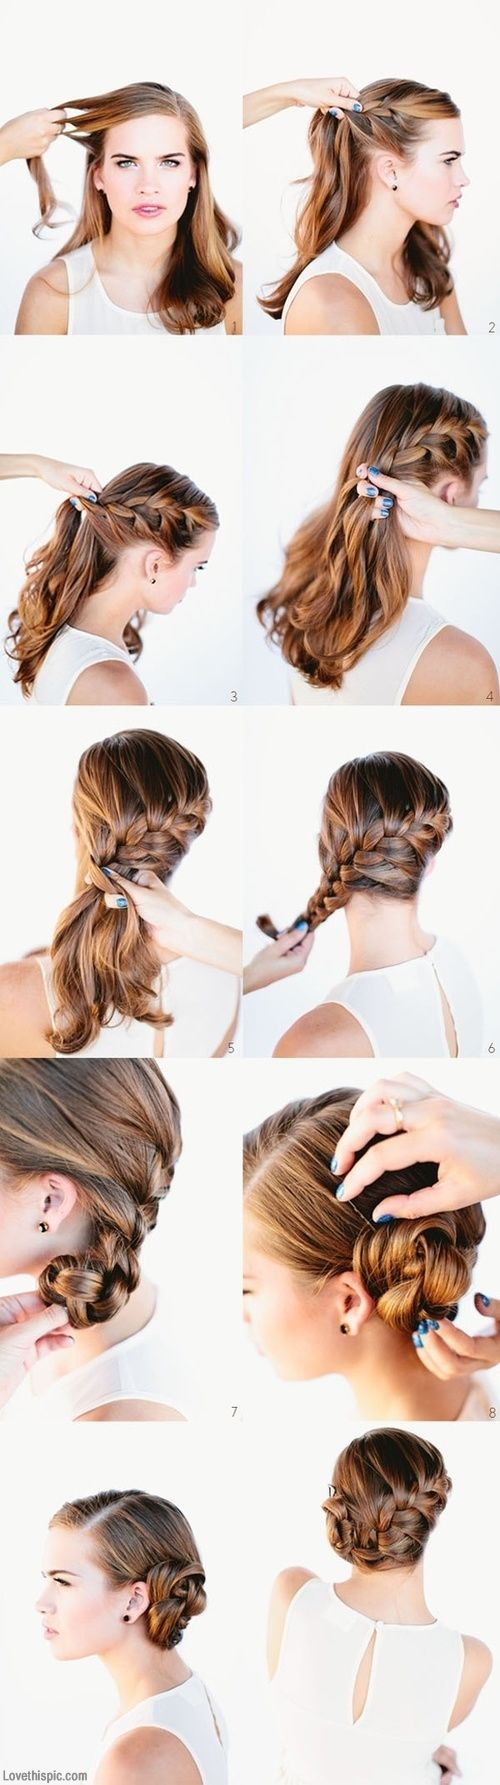 5352 best Sophisticated Braids images on Pinterest | Bridal ...